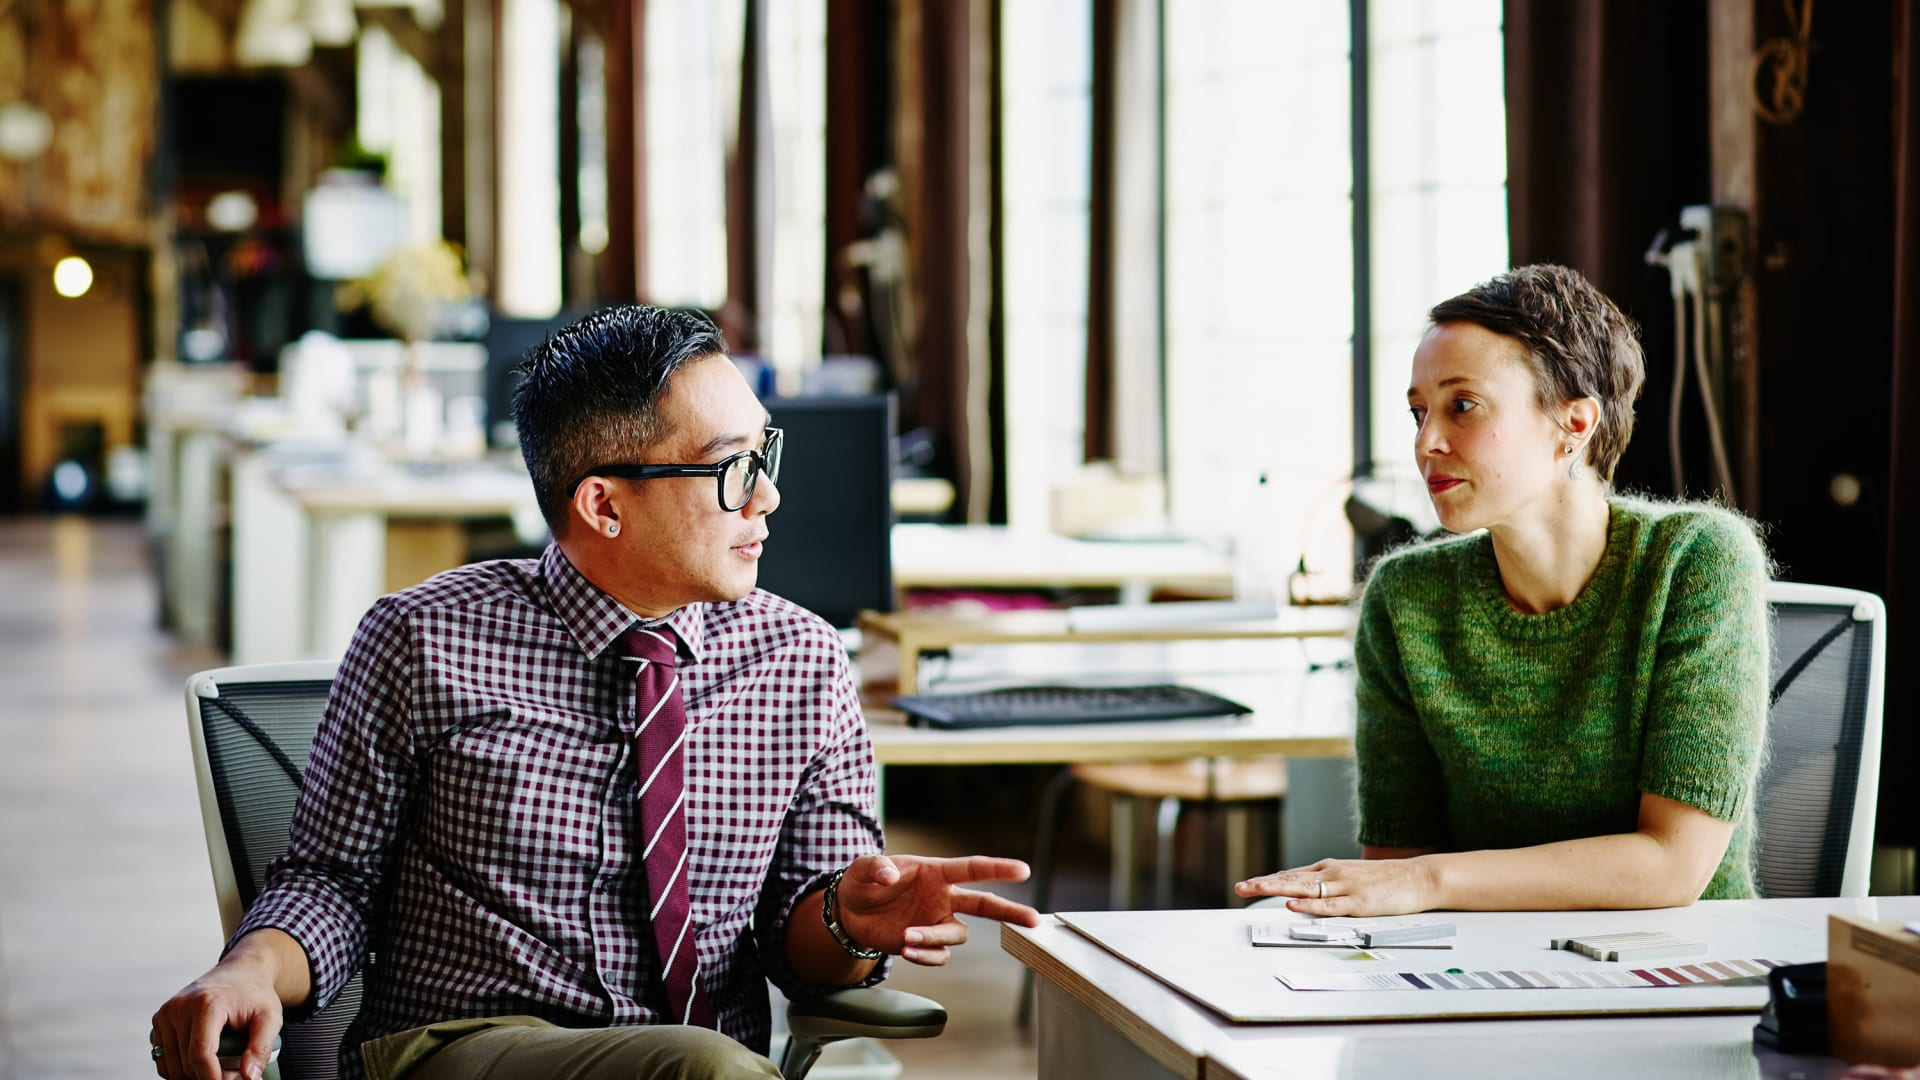 8 Qualities That Make for a Good Mentor